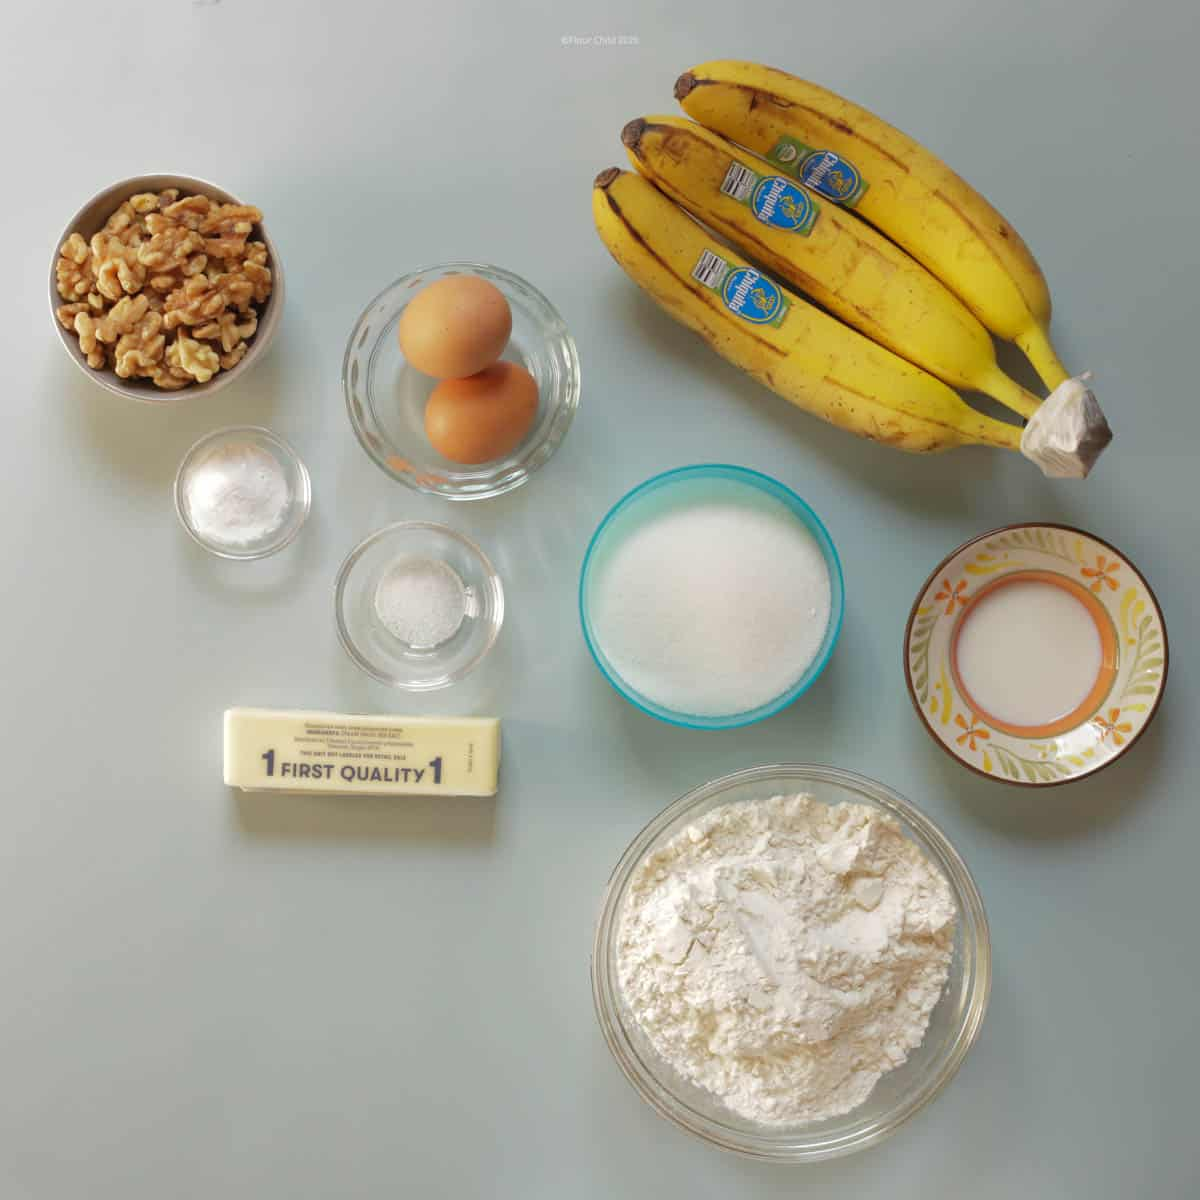 All the ingredients for banana nut bread